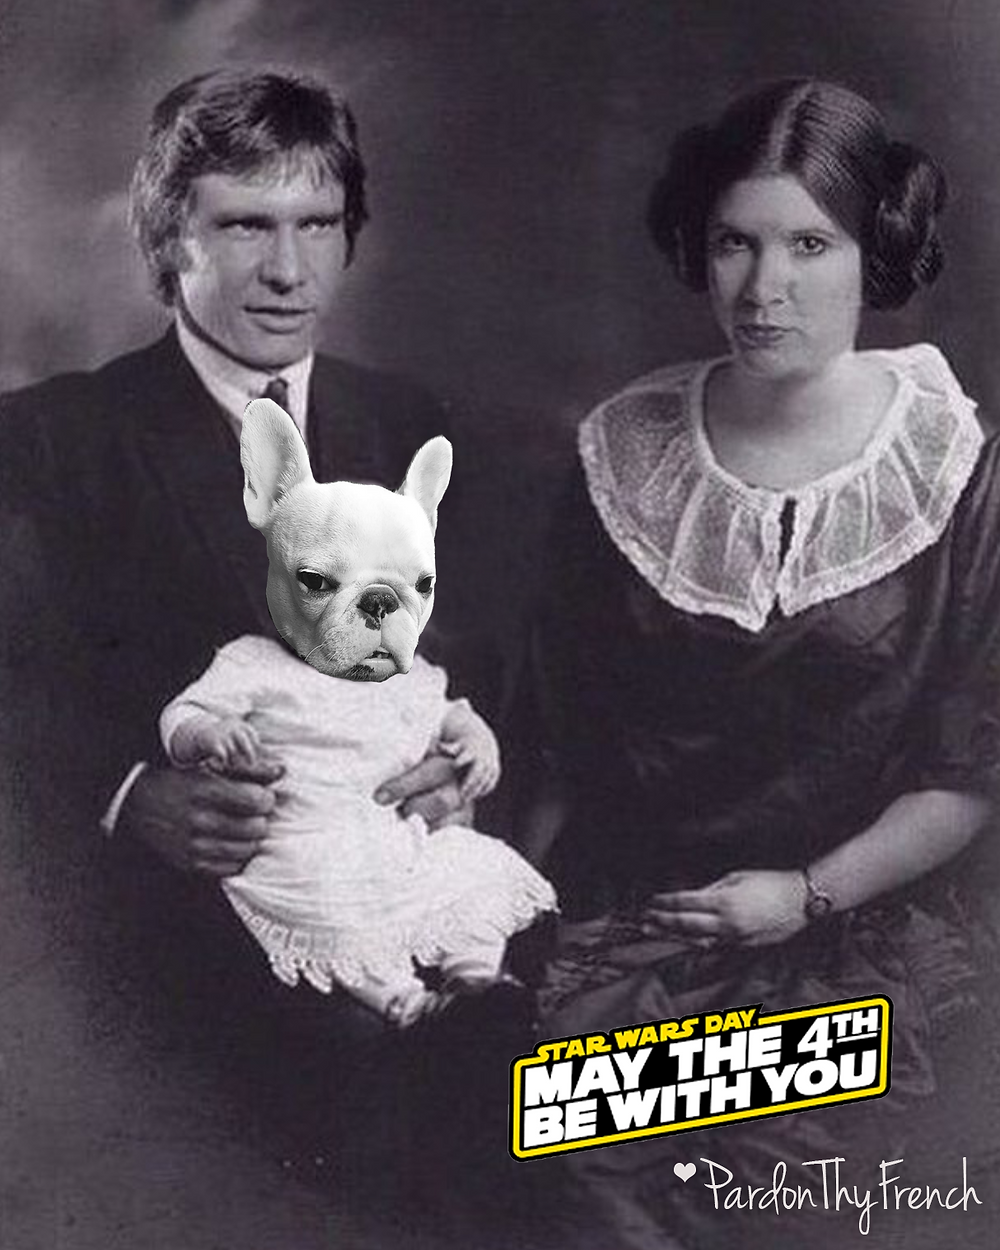 Pardon Thy French - May The 4th Be With You